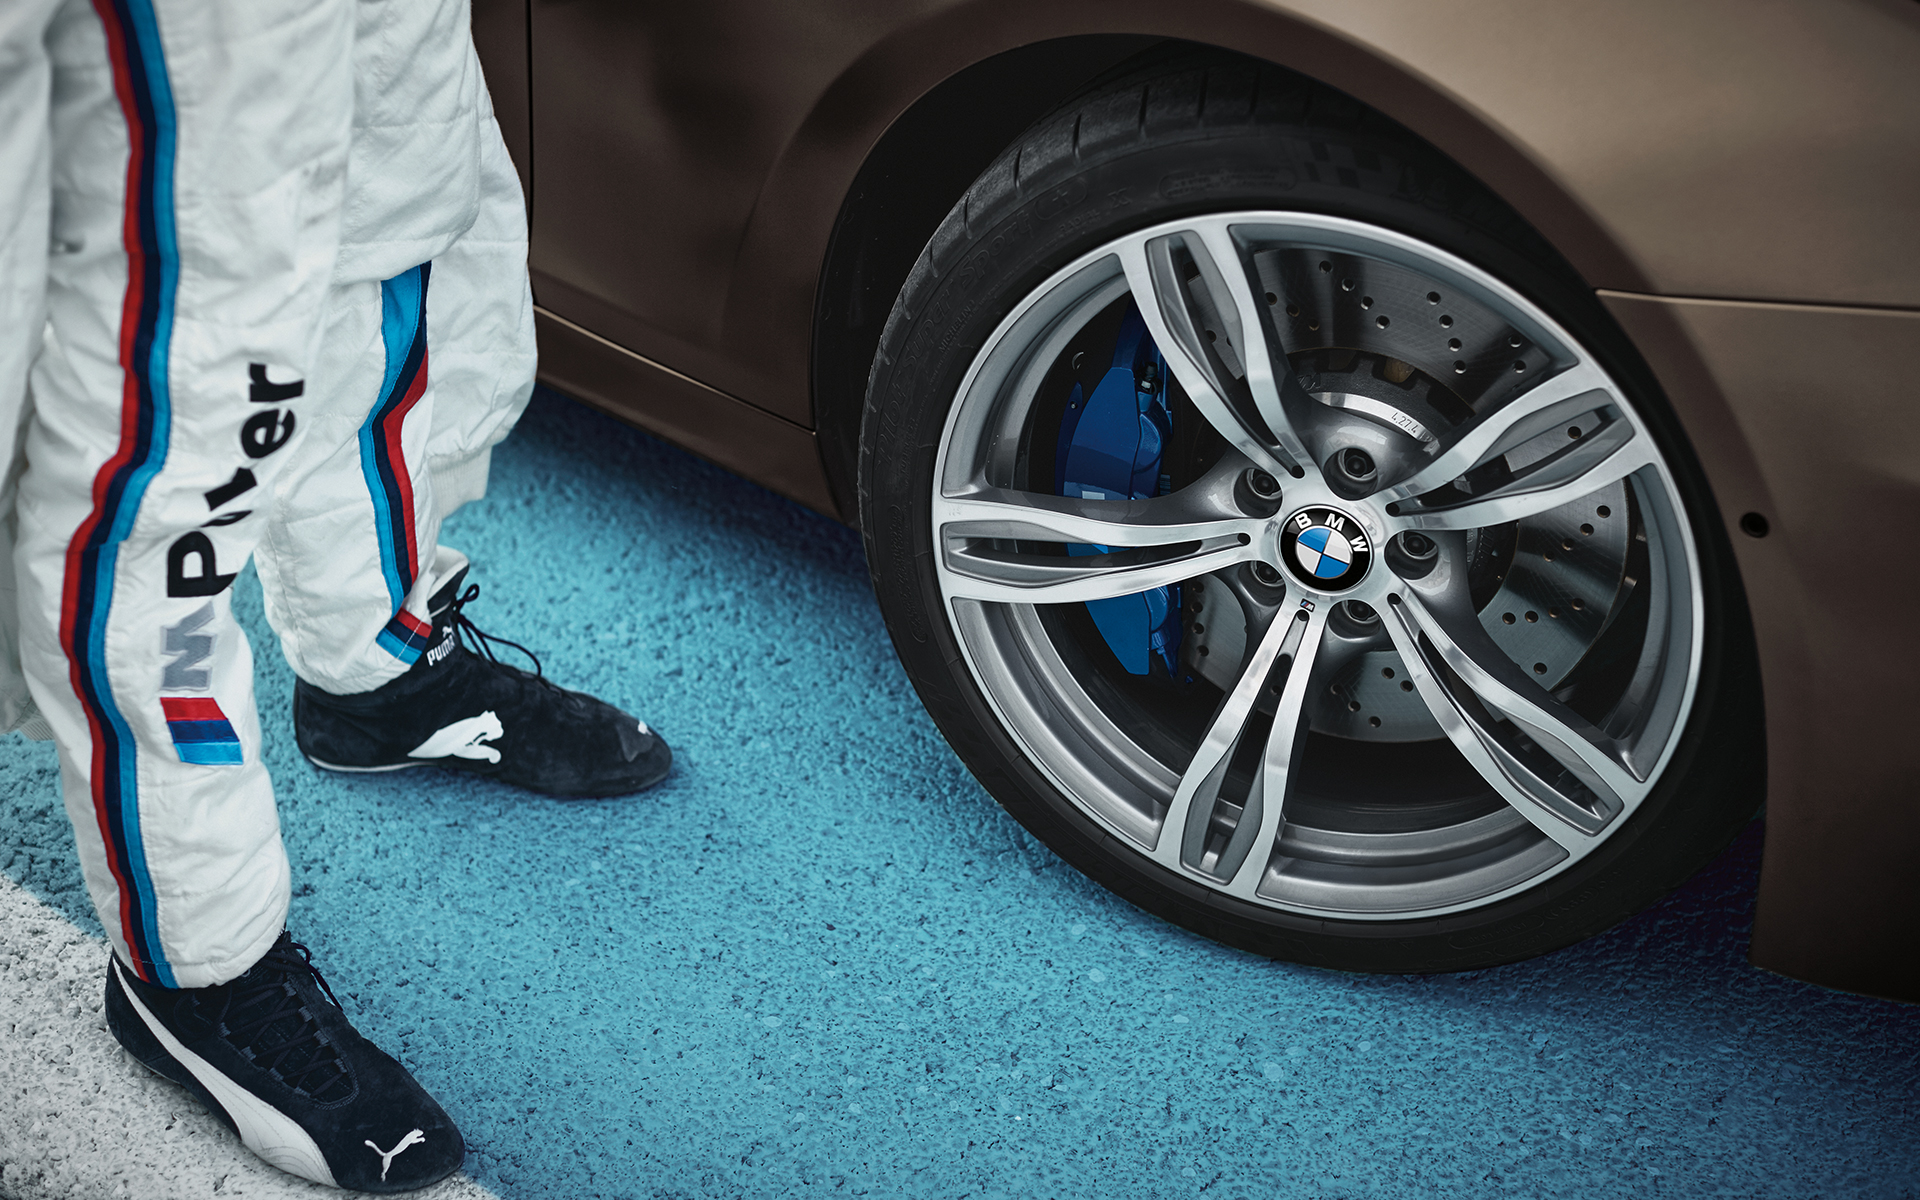 BMW M6 Cabriolet wheel